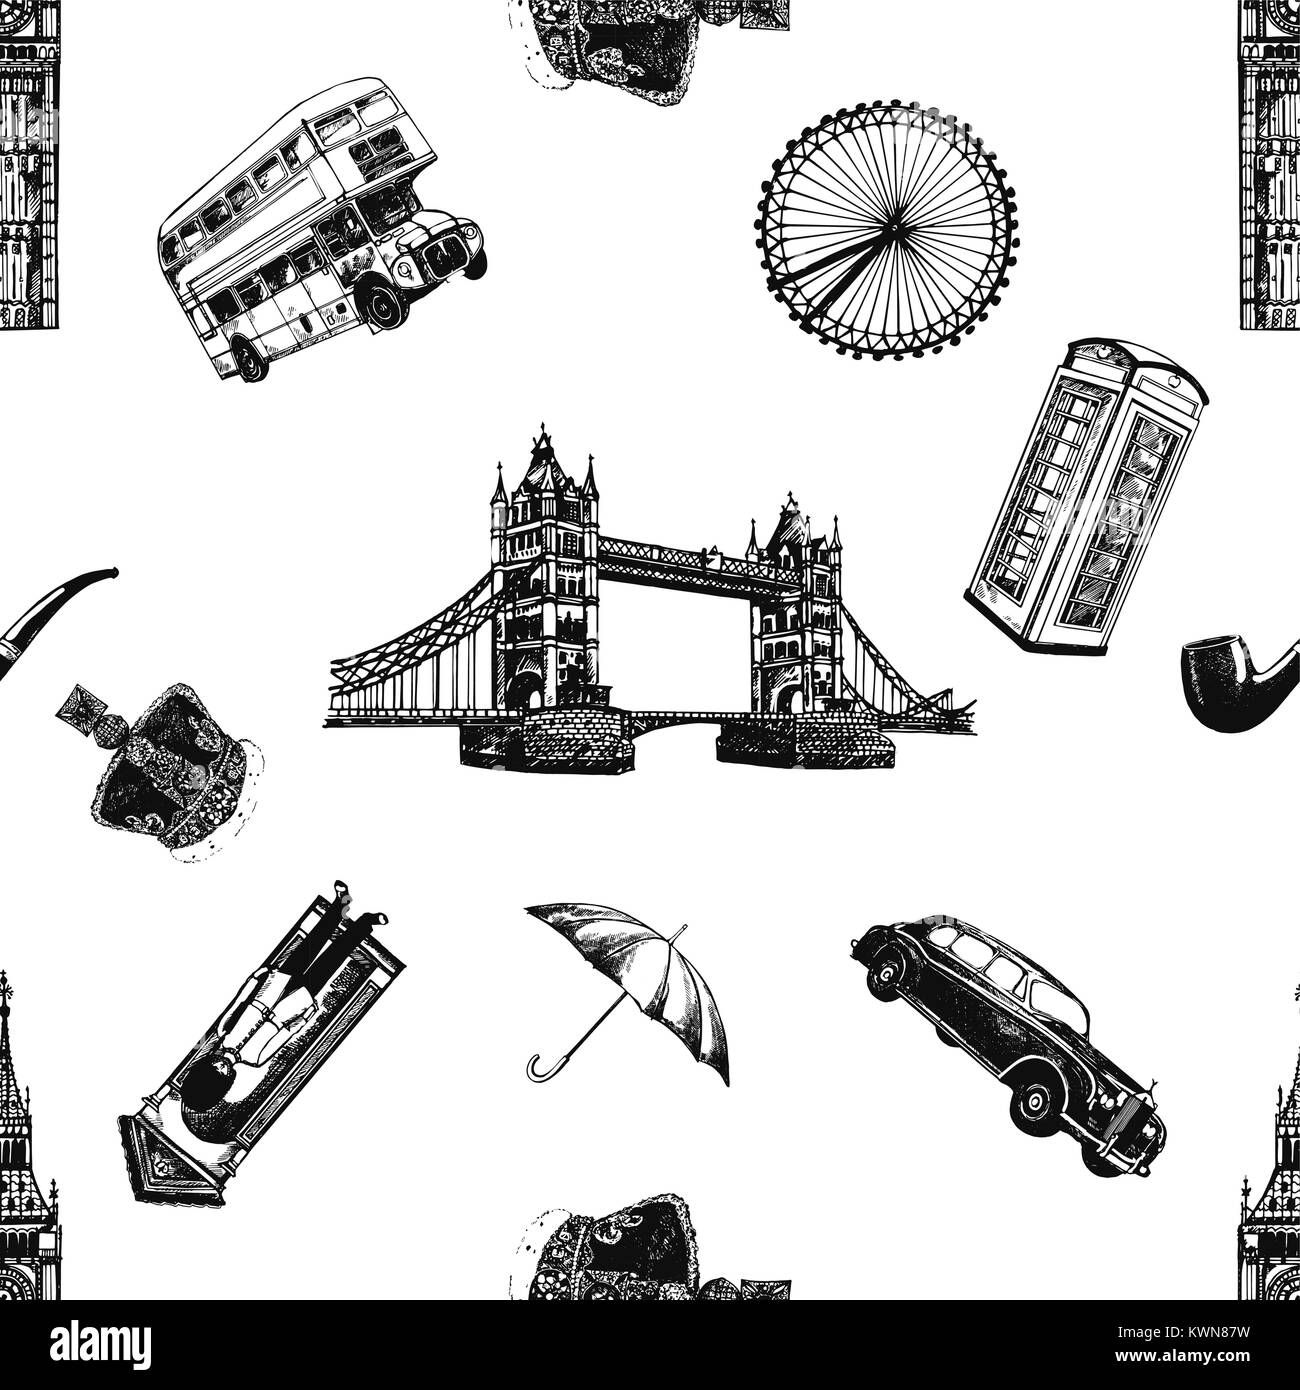 Seamless pattern of hand drawn sketch style England themed objects. Vector illustration isolated on white background. - Stock Image